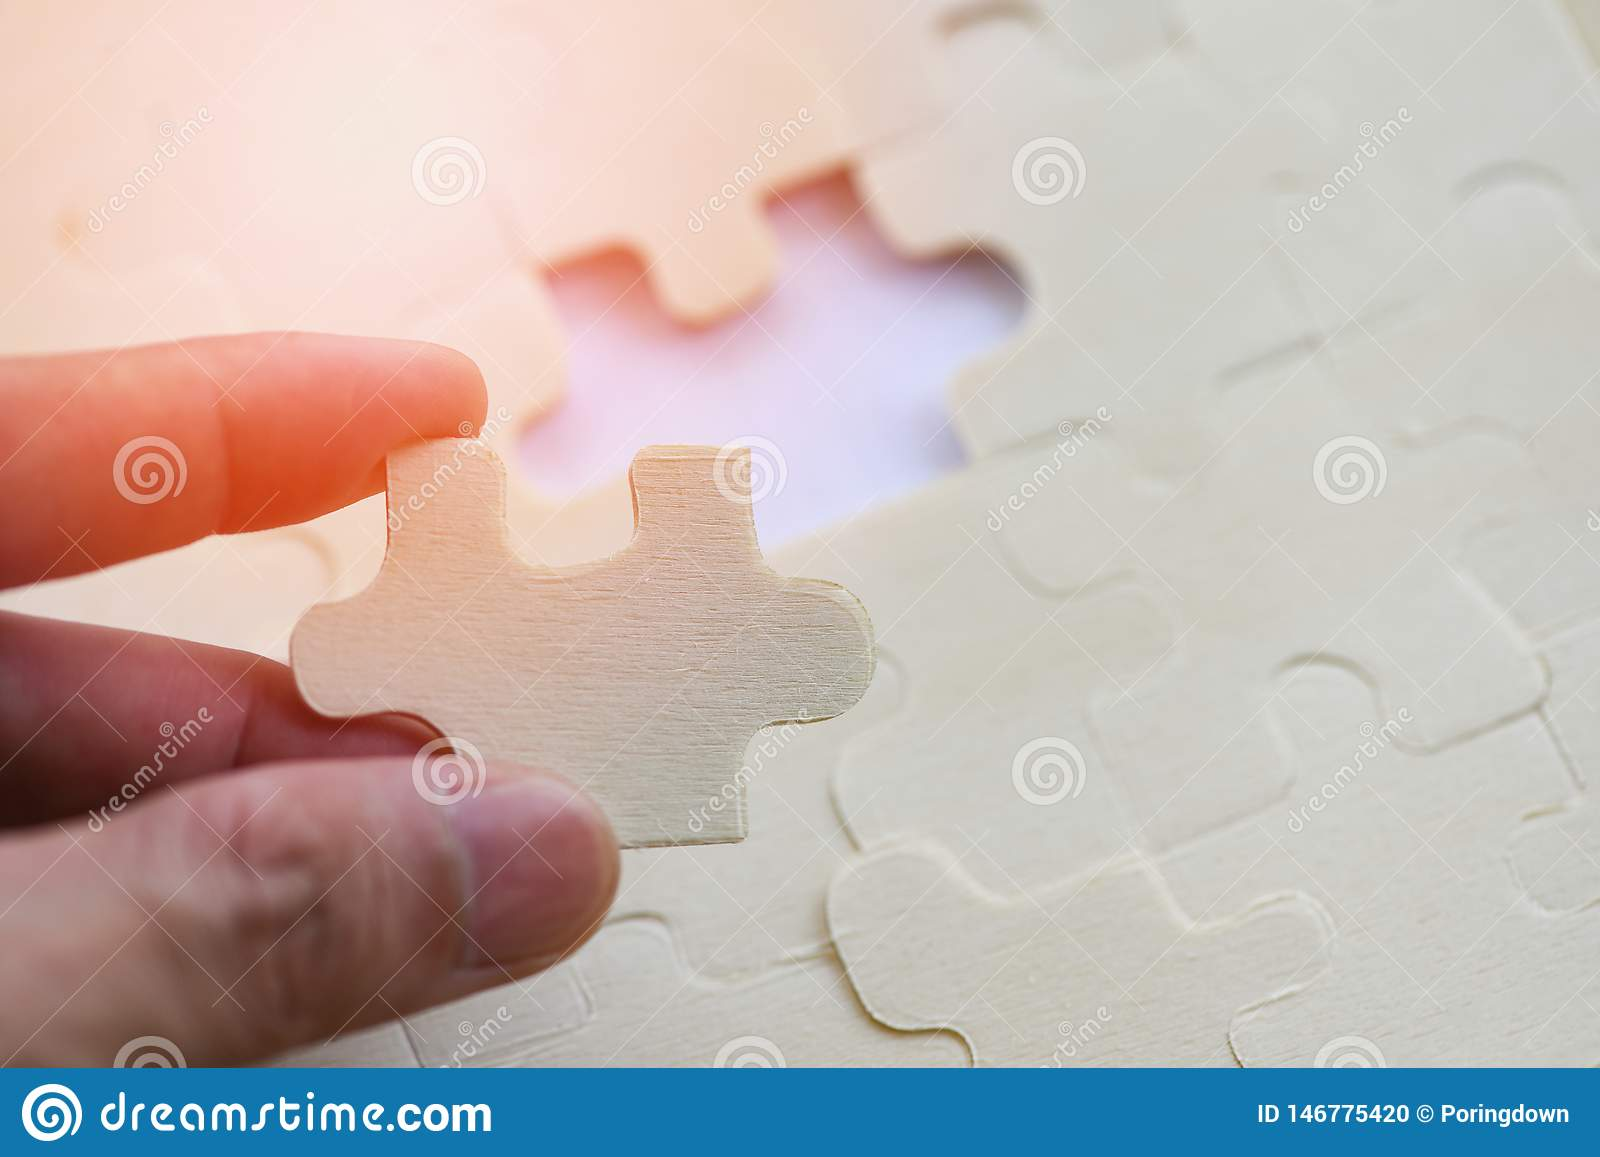 Hand trying to connect jigsaw puzzle on background jigsaw piece connecting